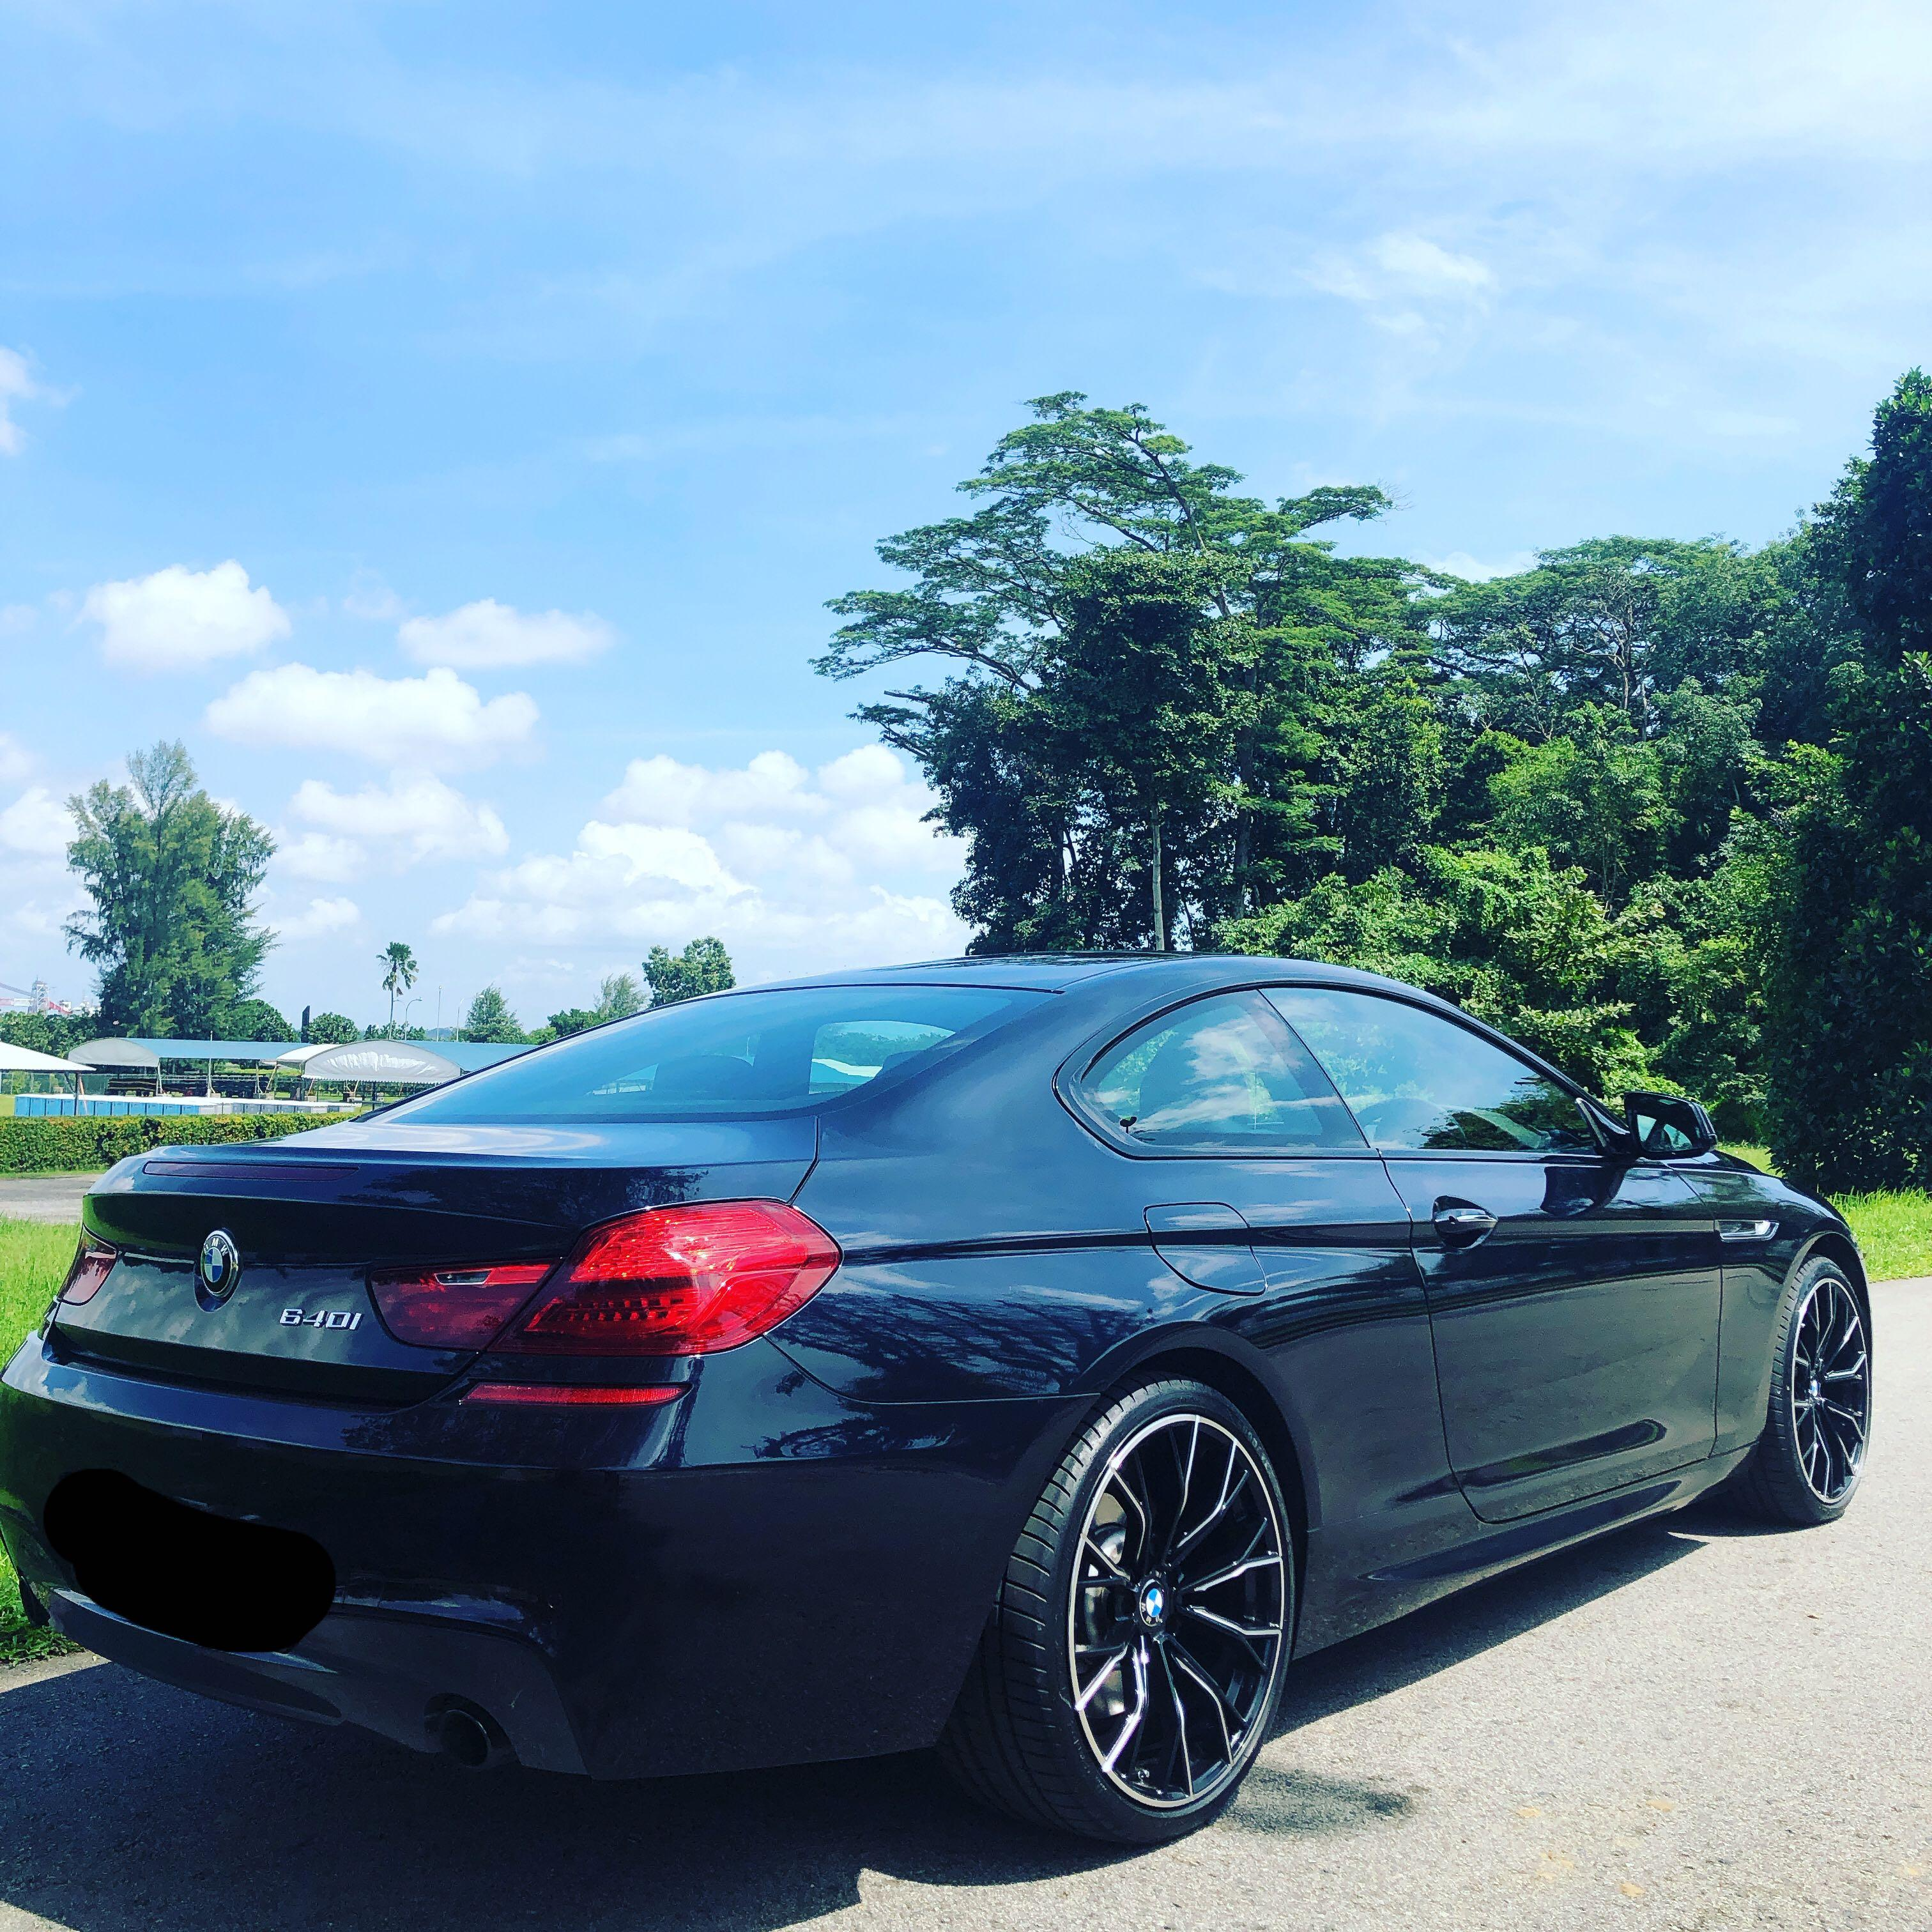 BMW F13 640i M Sport for short term or daily lease